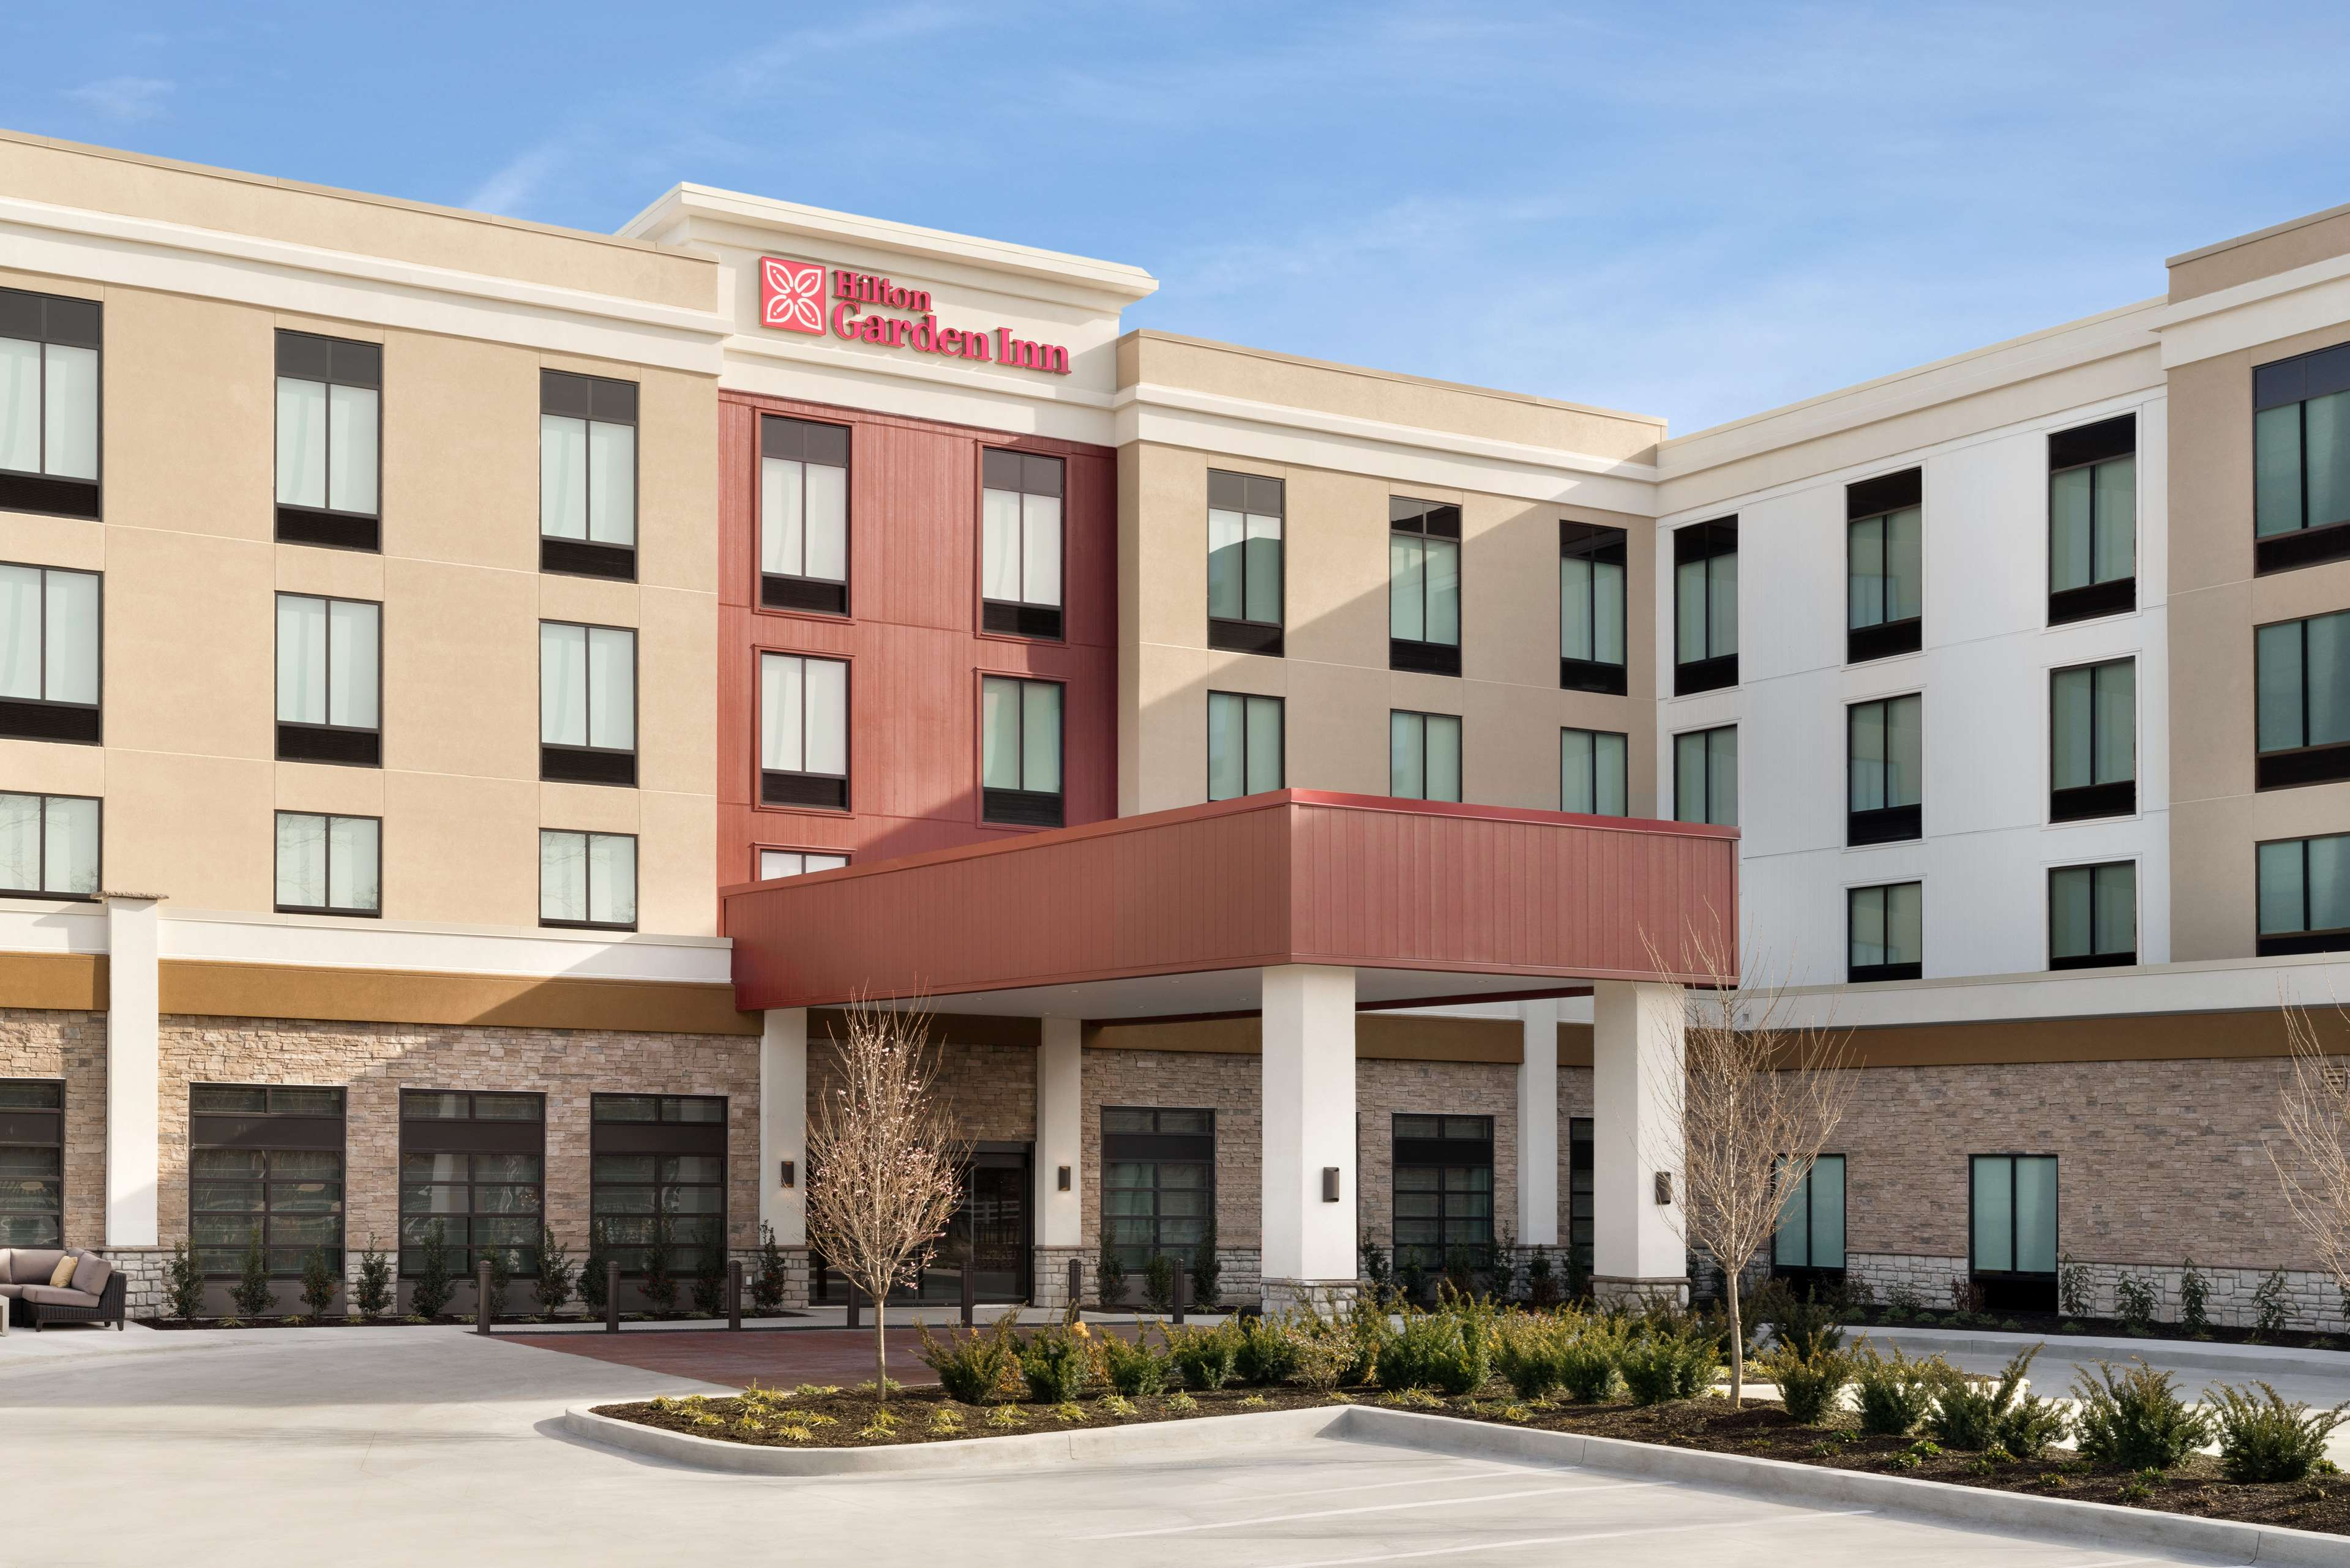 Business directory for newtown square pa for Hilton garden inn newtown square